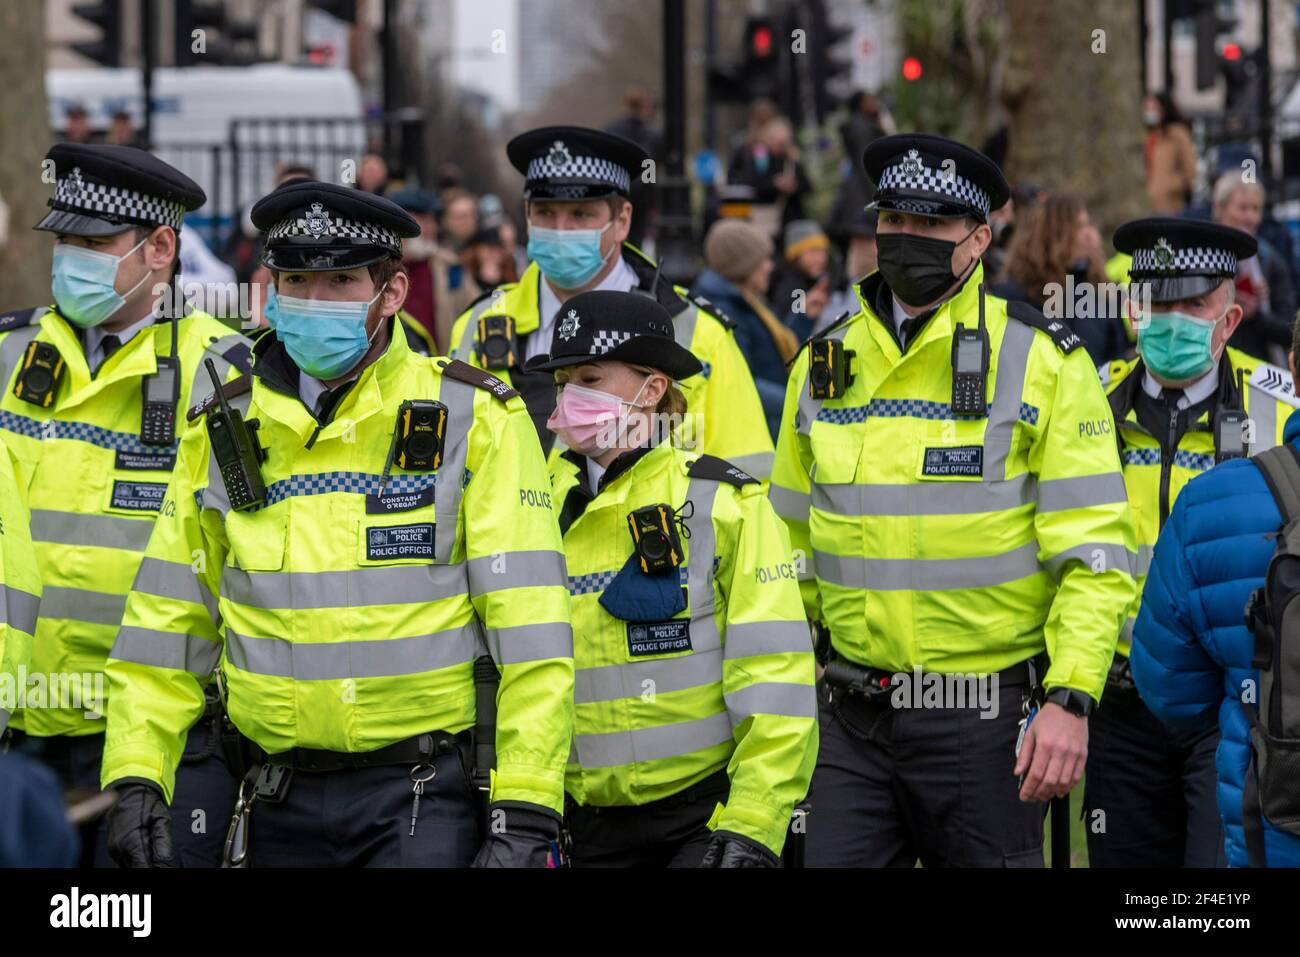 police-arriving-at-an-anti-lockdown-anti-policing-bill-protest-rally-in-london-uk-female-officer-with-pink-face-mask-male-officers-with-blue-mask-2F4E1YP.jpg